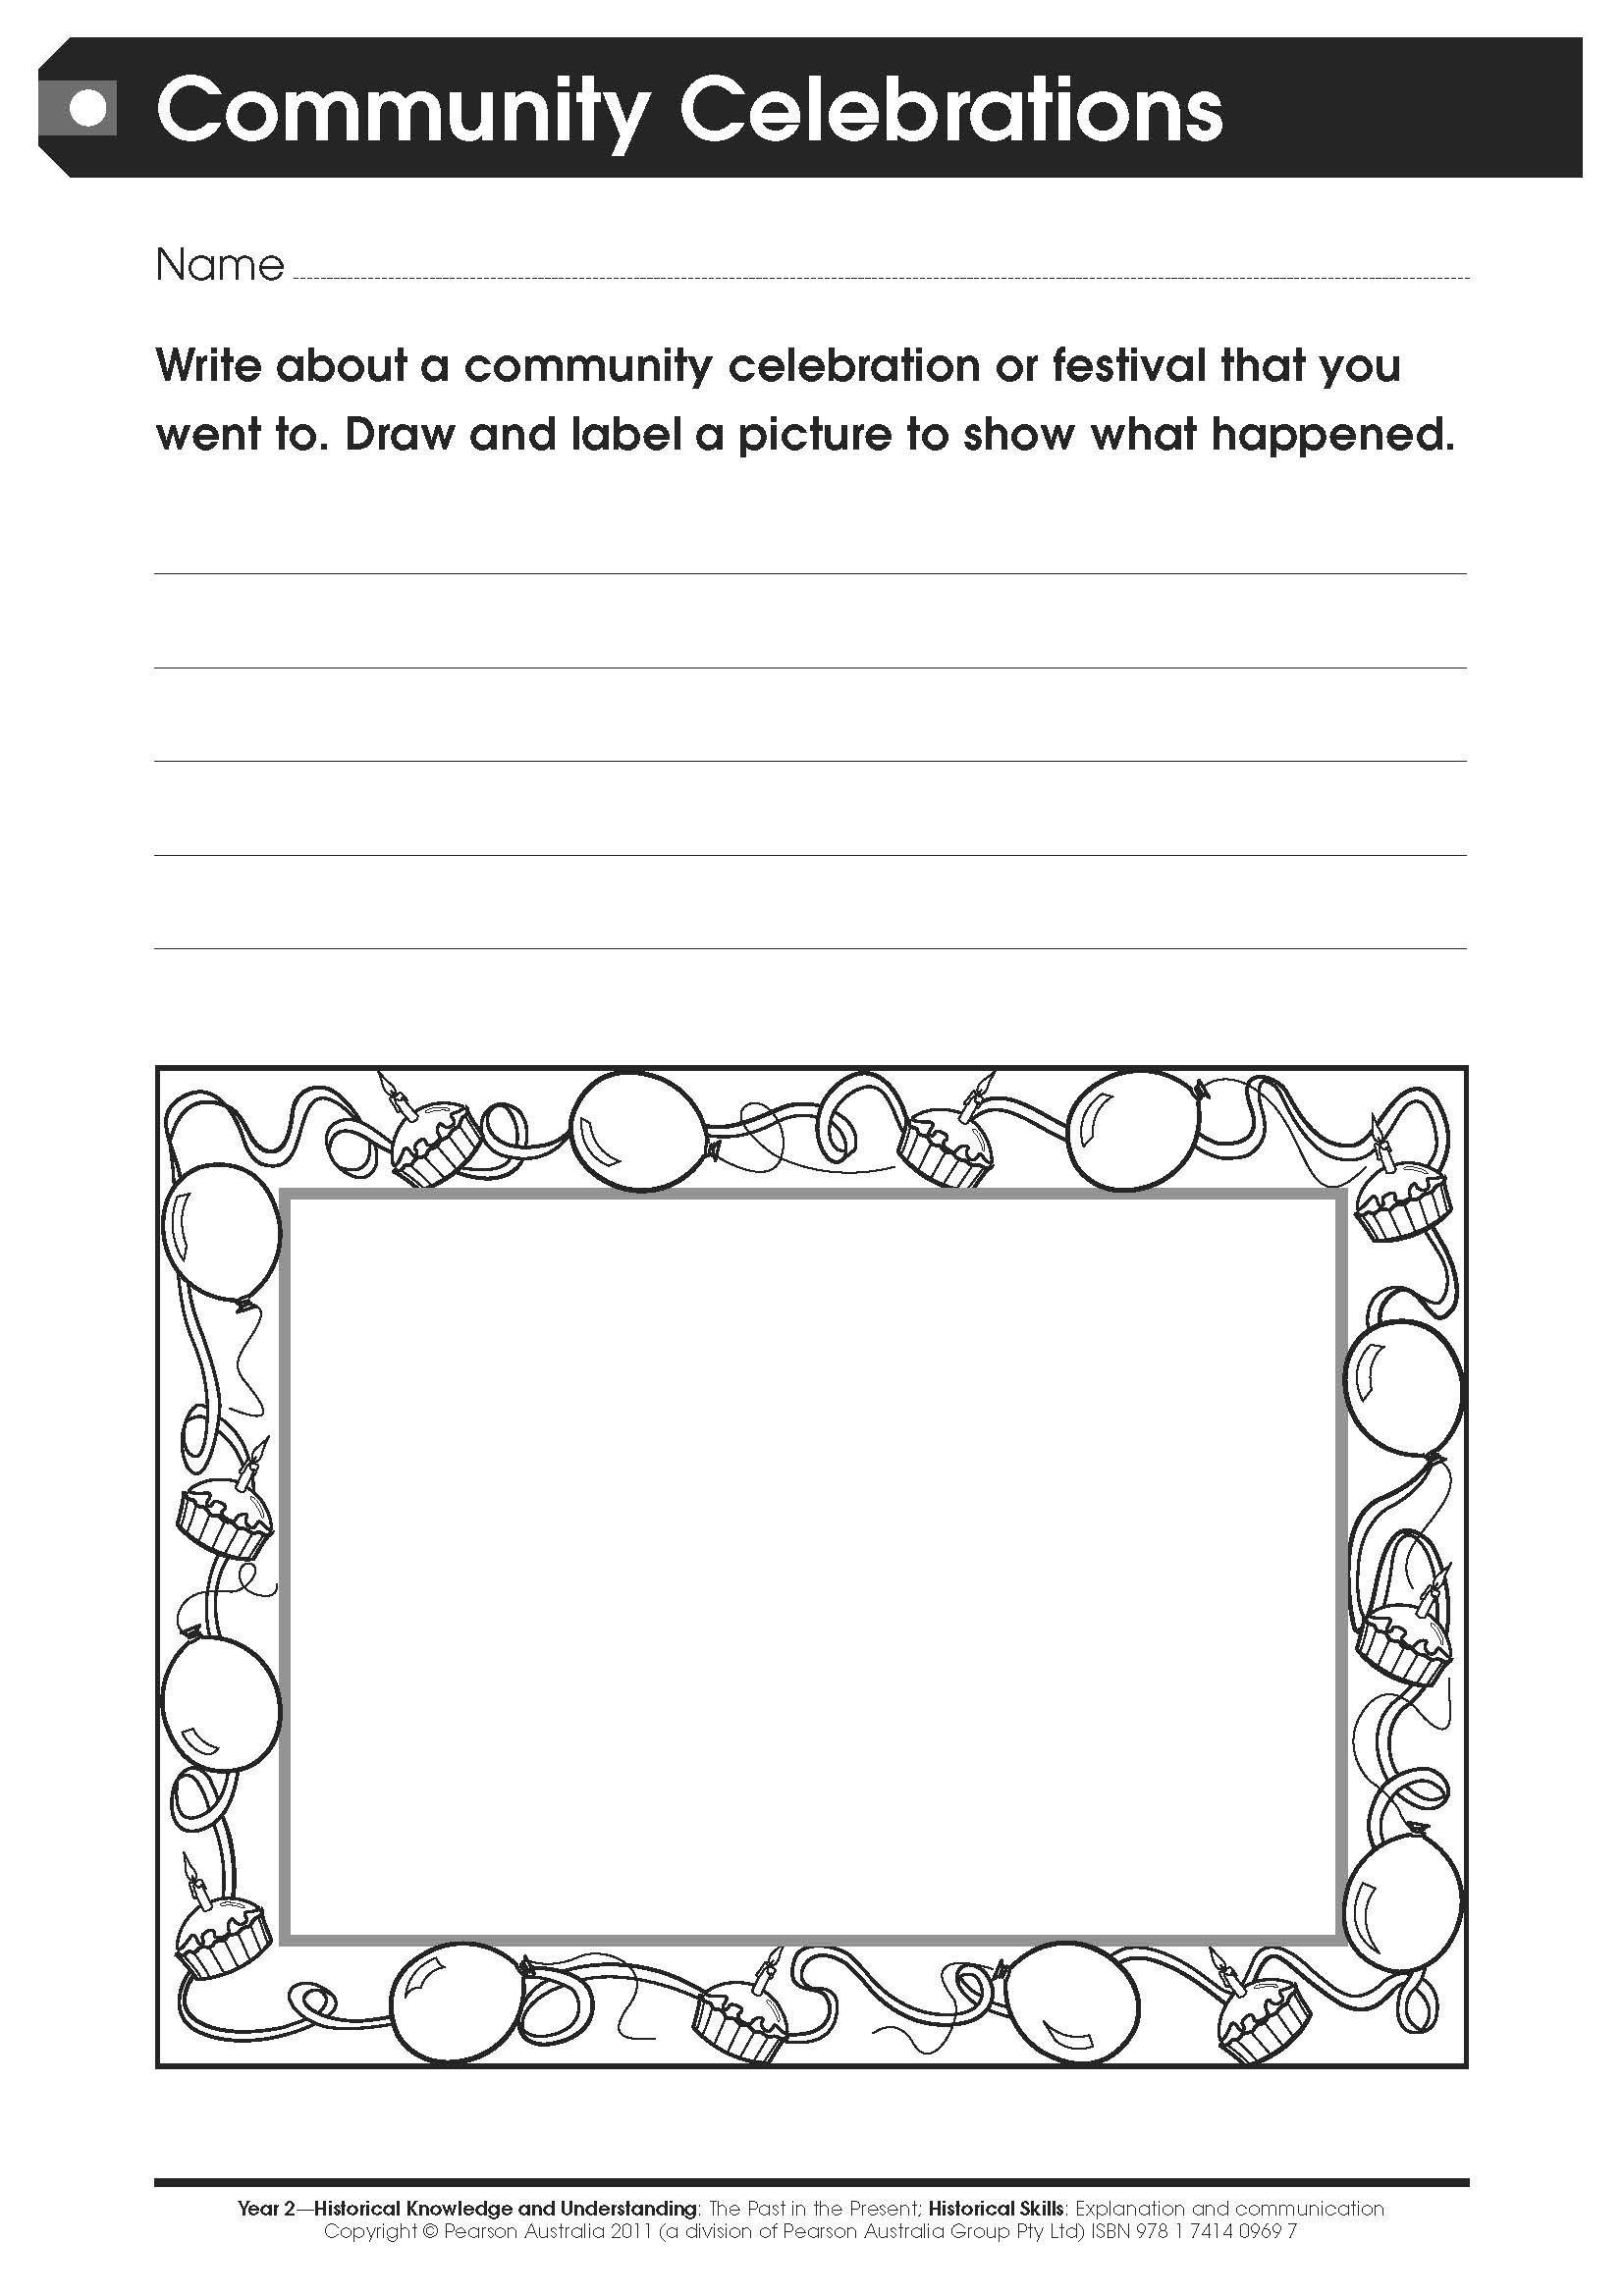 Kindergarten History Worksheets Free Worksheet Munity Celebrations for Lower Primary